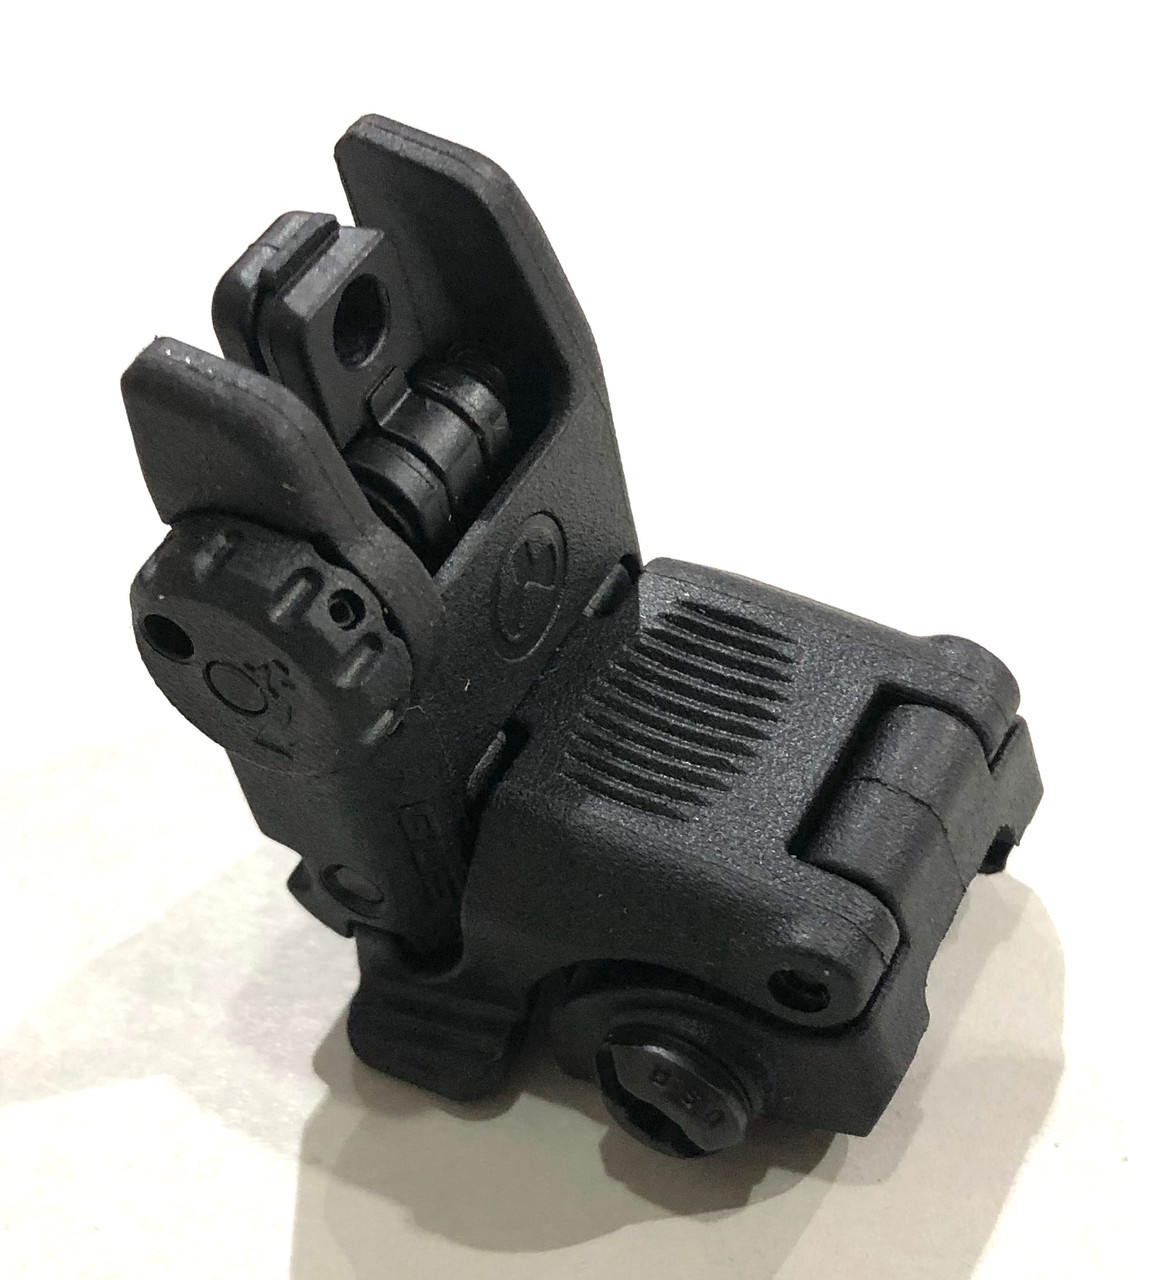 MAGPUL MBUS Gen2 Rear Flip Up Sight